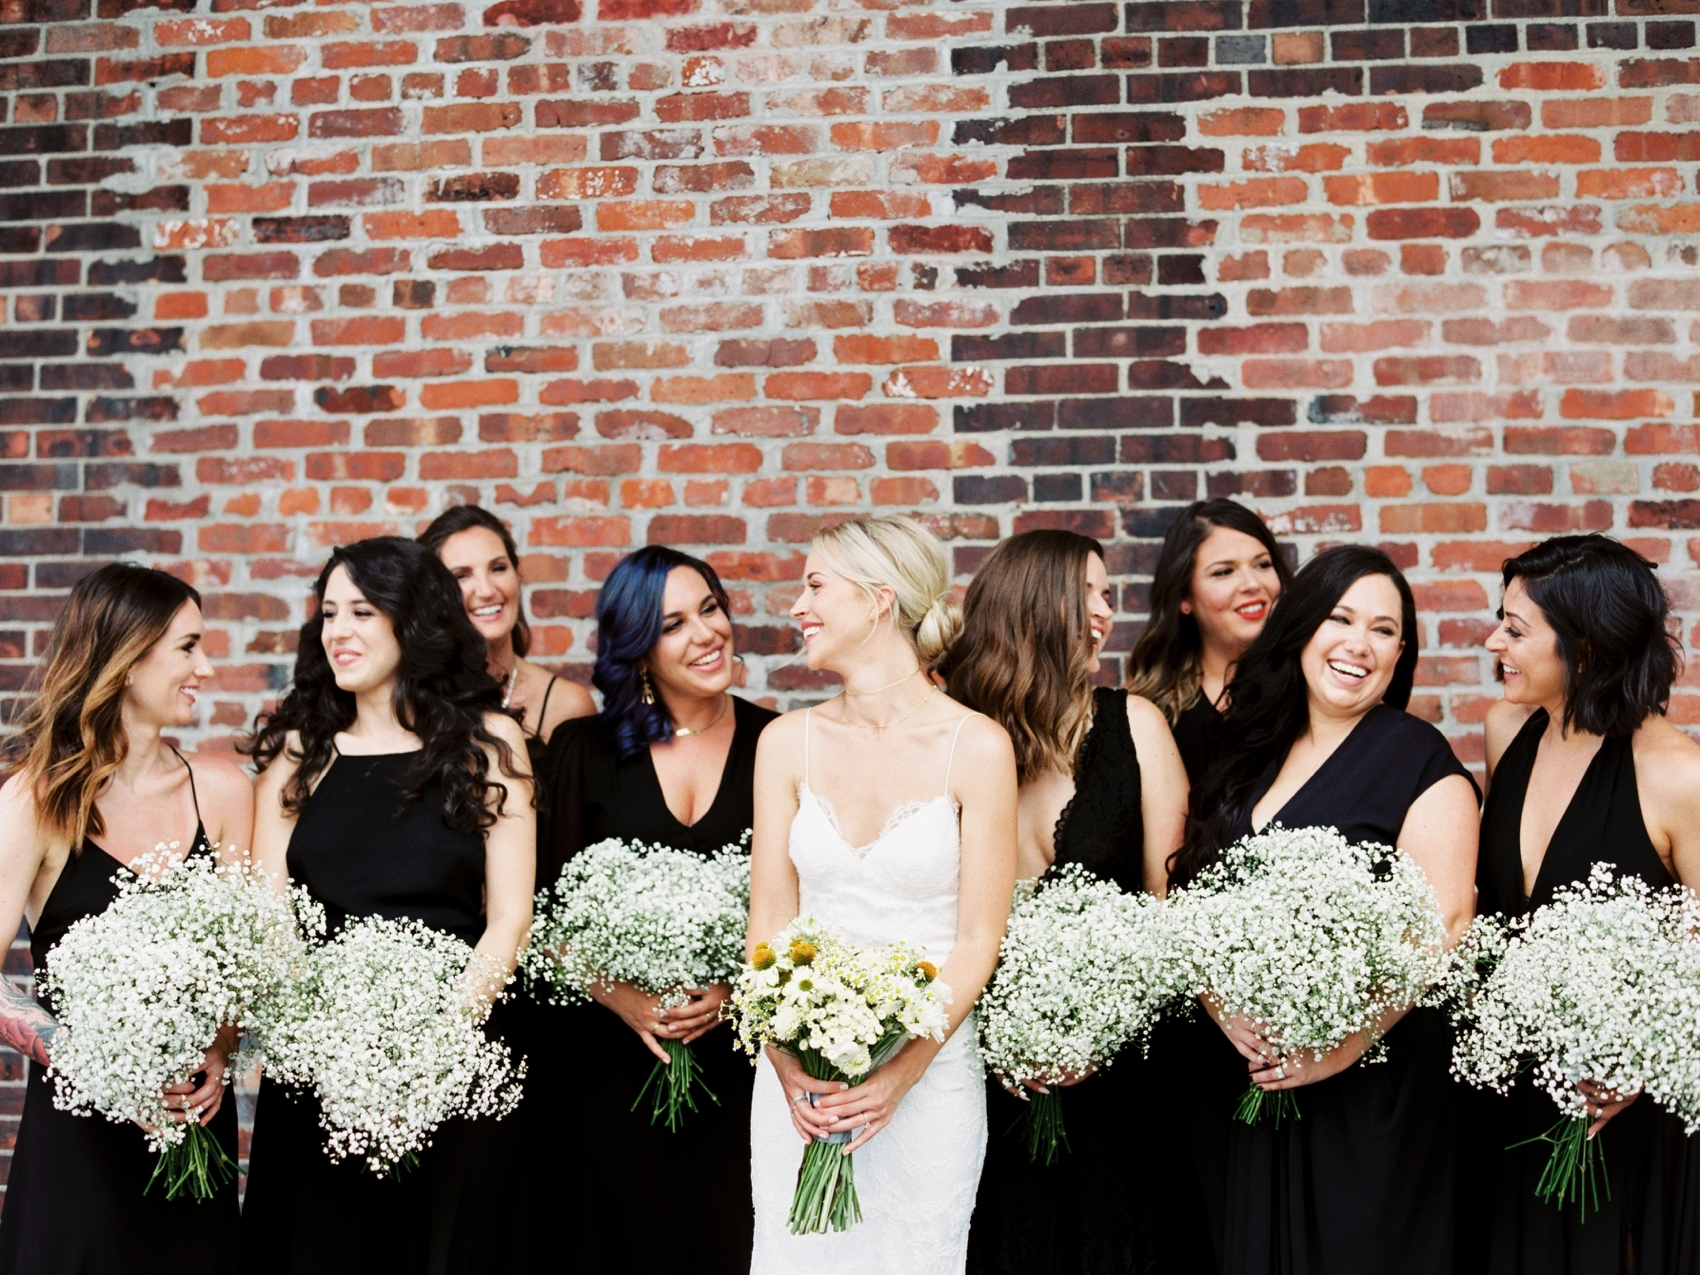 http://greenweddingshoes.com/the-gaslight-anthems-alex-rosamilia-marries-in-a-sweet-jersey-wedding/